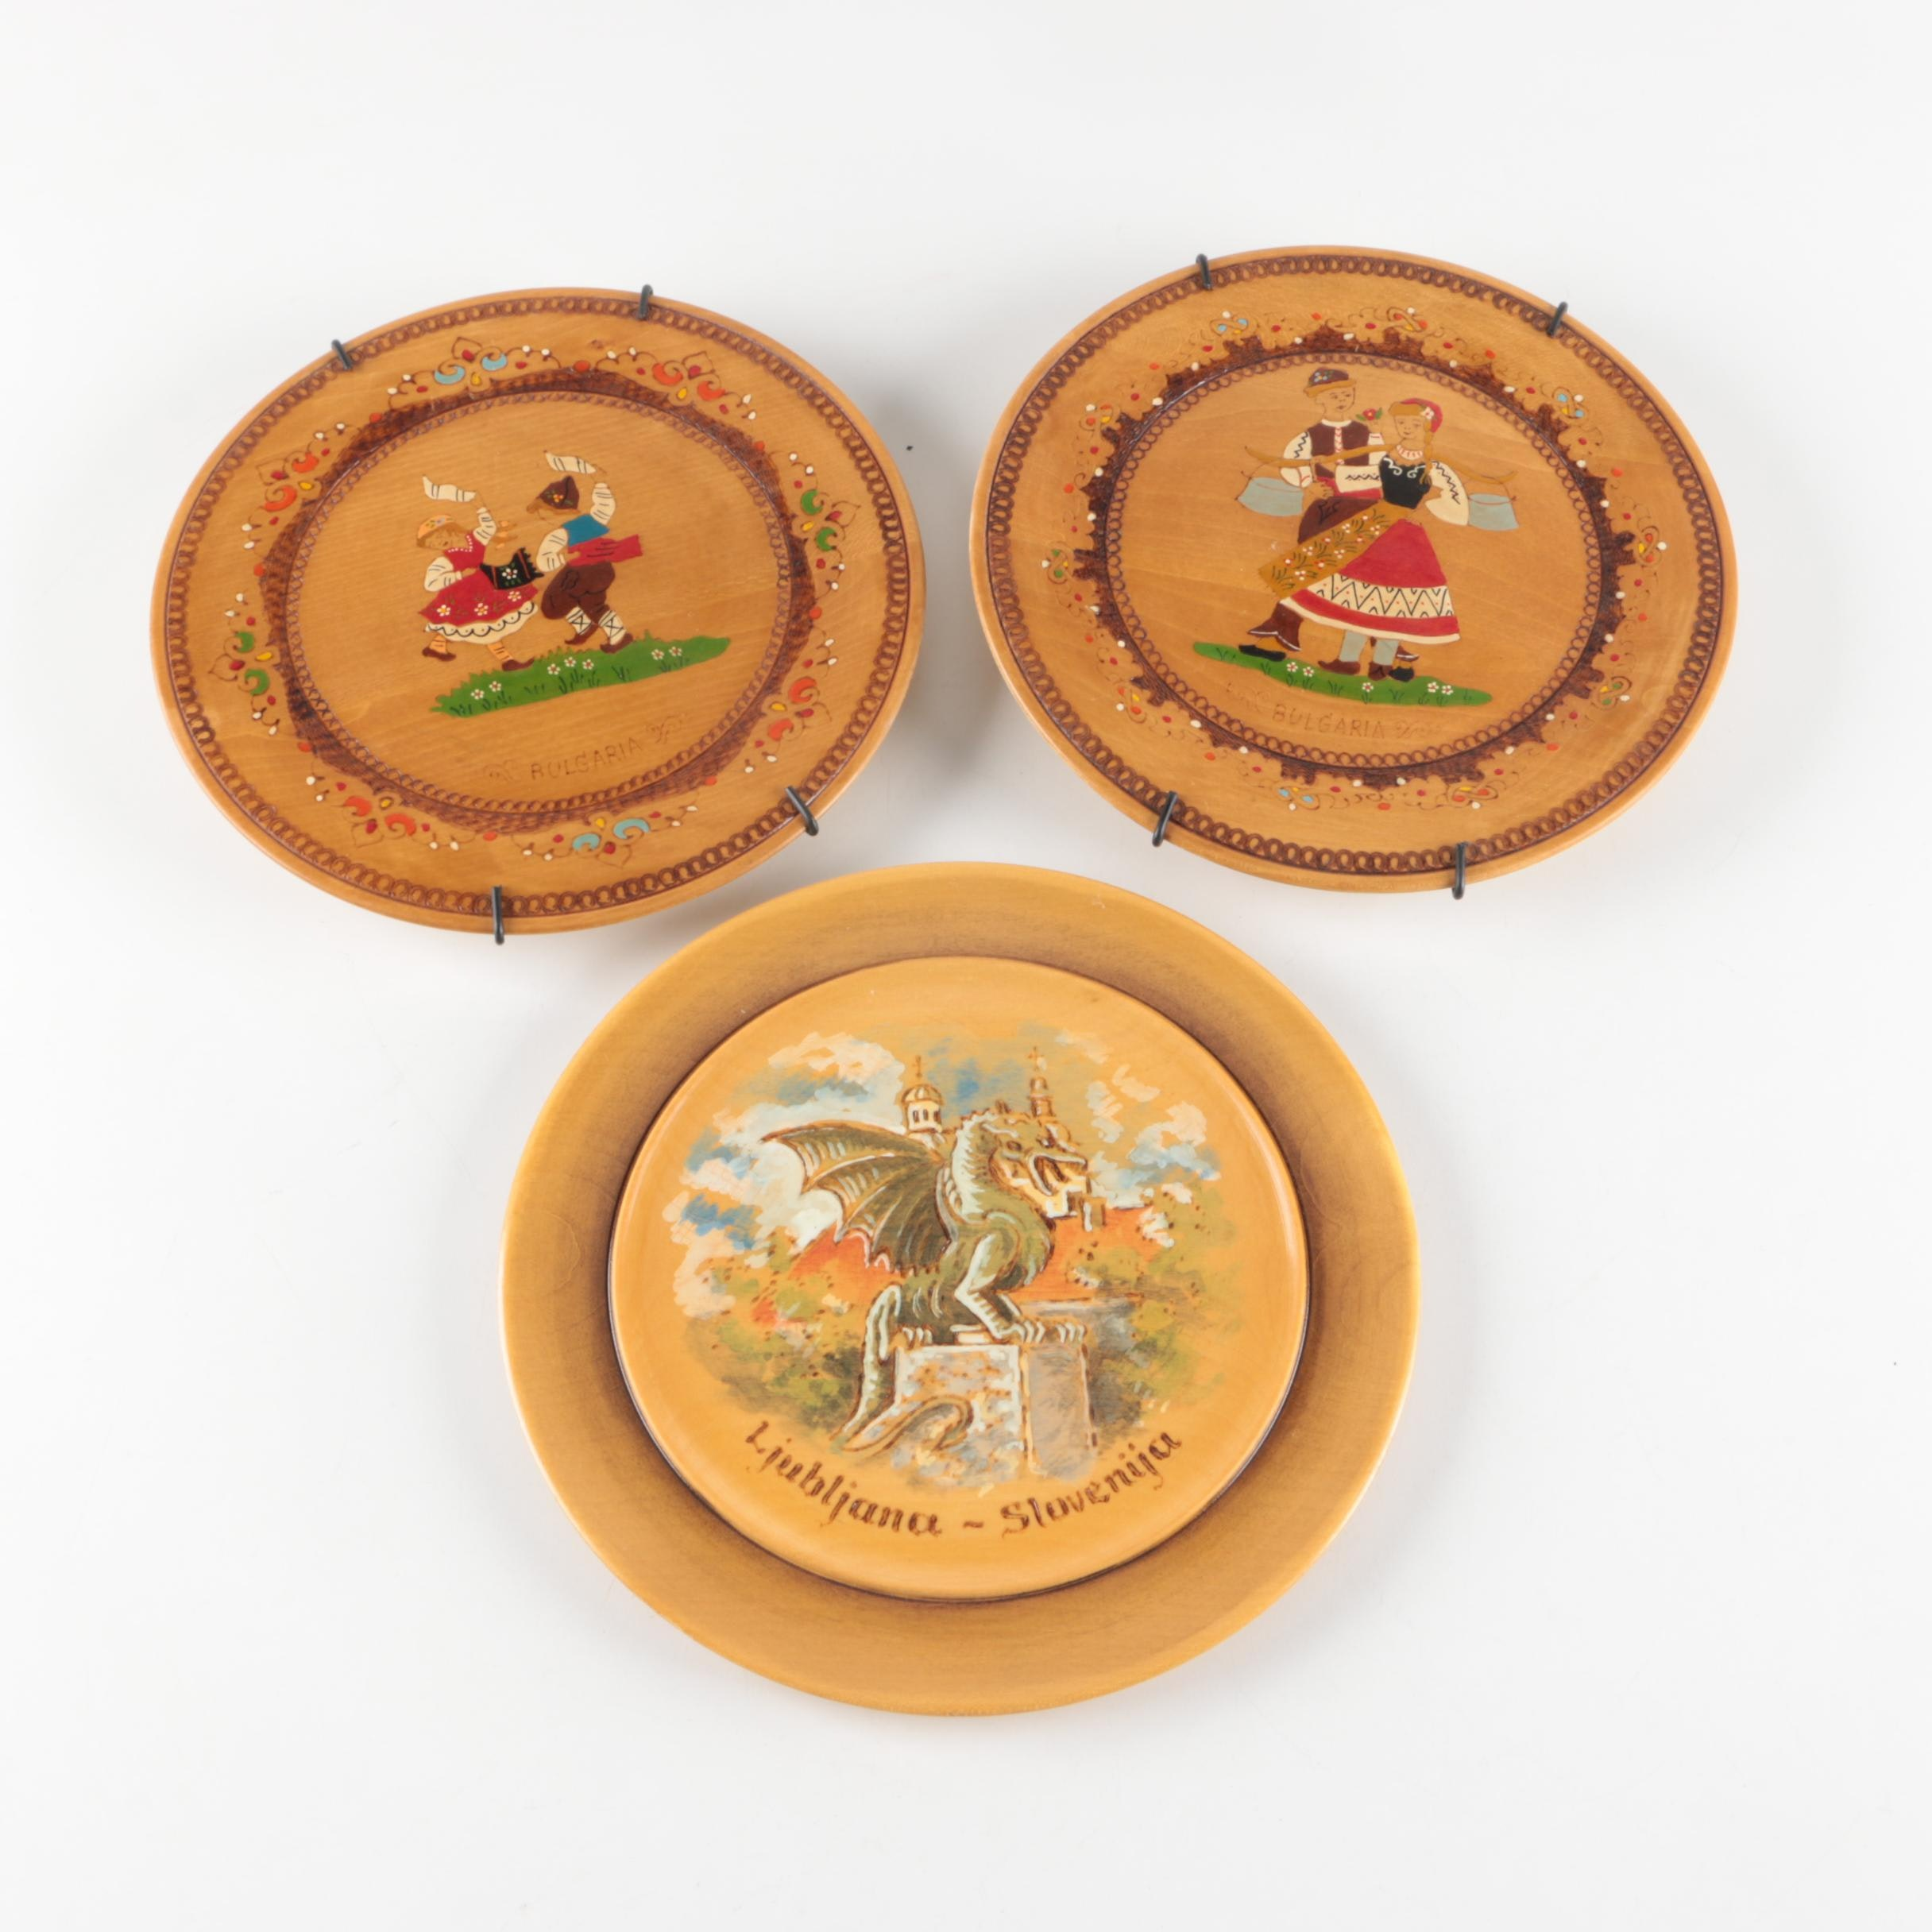 Hand-Painted Wooden Decorative Plates from Bulgaria and Slovenia